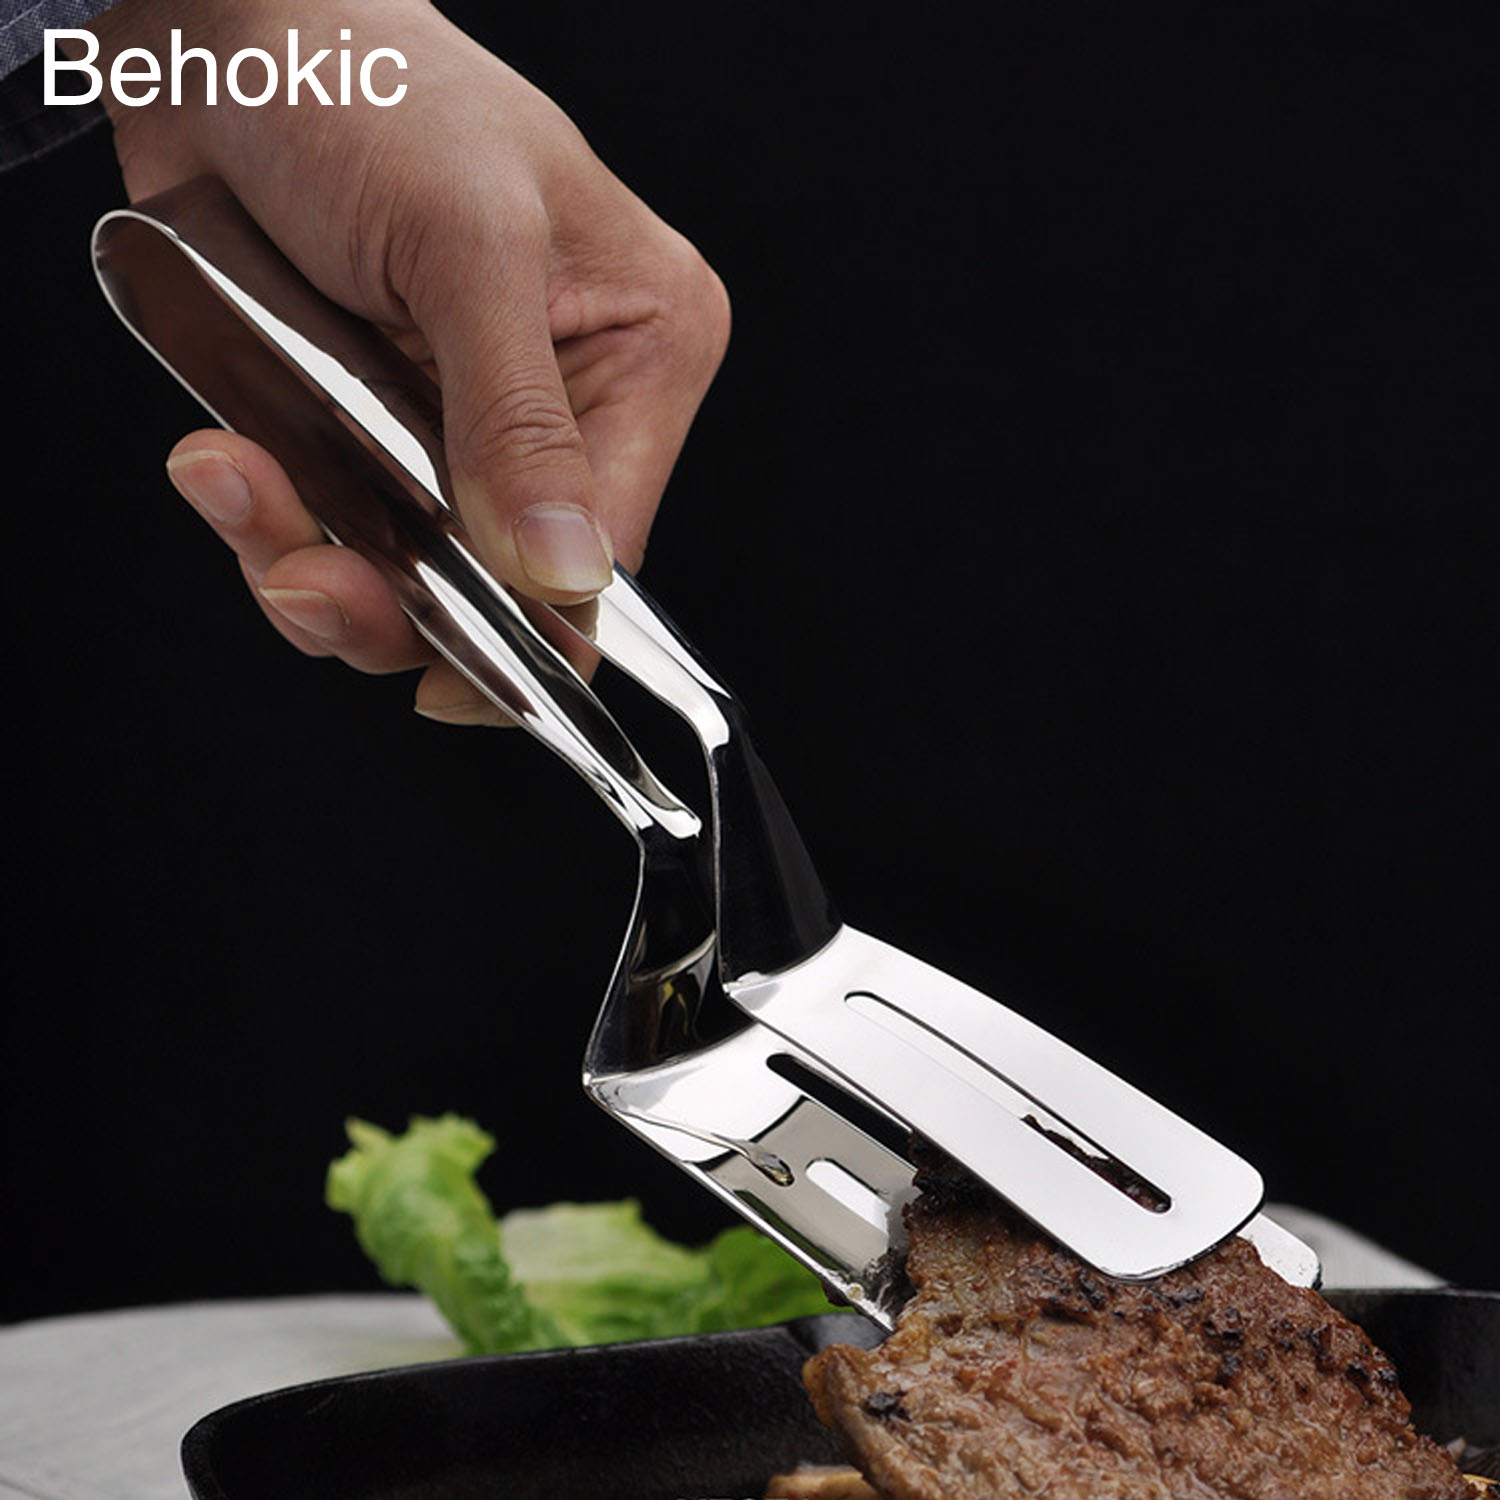 Behogar Multifunctional Stainless Steel Barbecue Clip BBQ Tongs Fried Steak Pie Pizza Bread Meat Clamp Cooking Tools